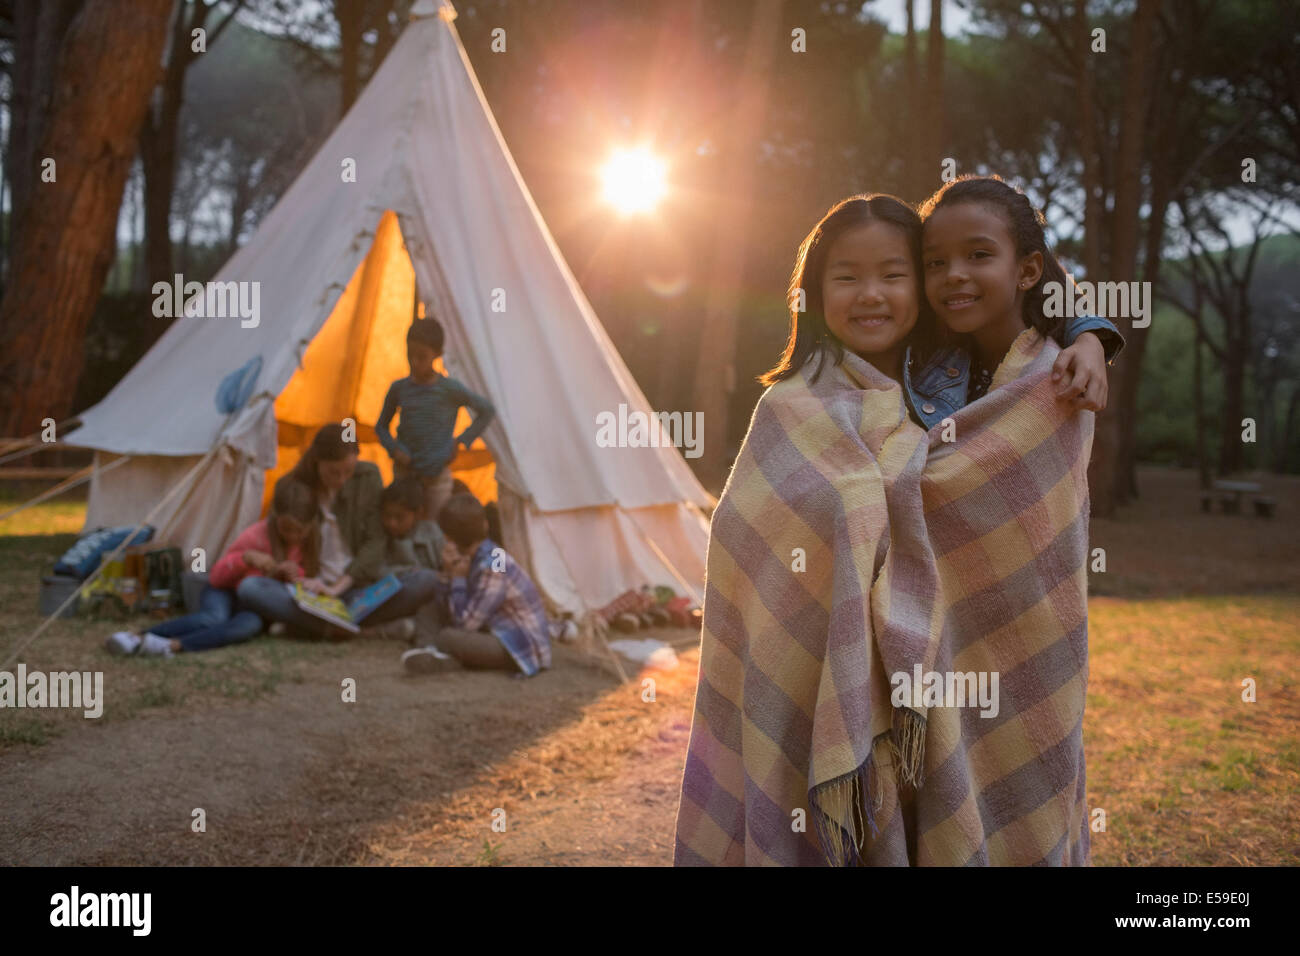 Girls wrapped in blanket at campsite - Stock Image